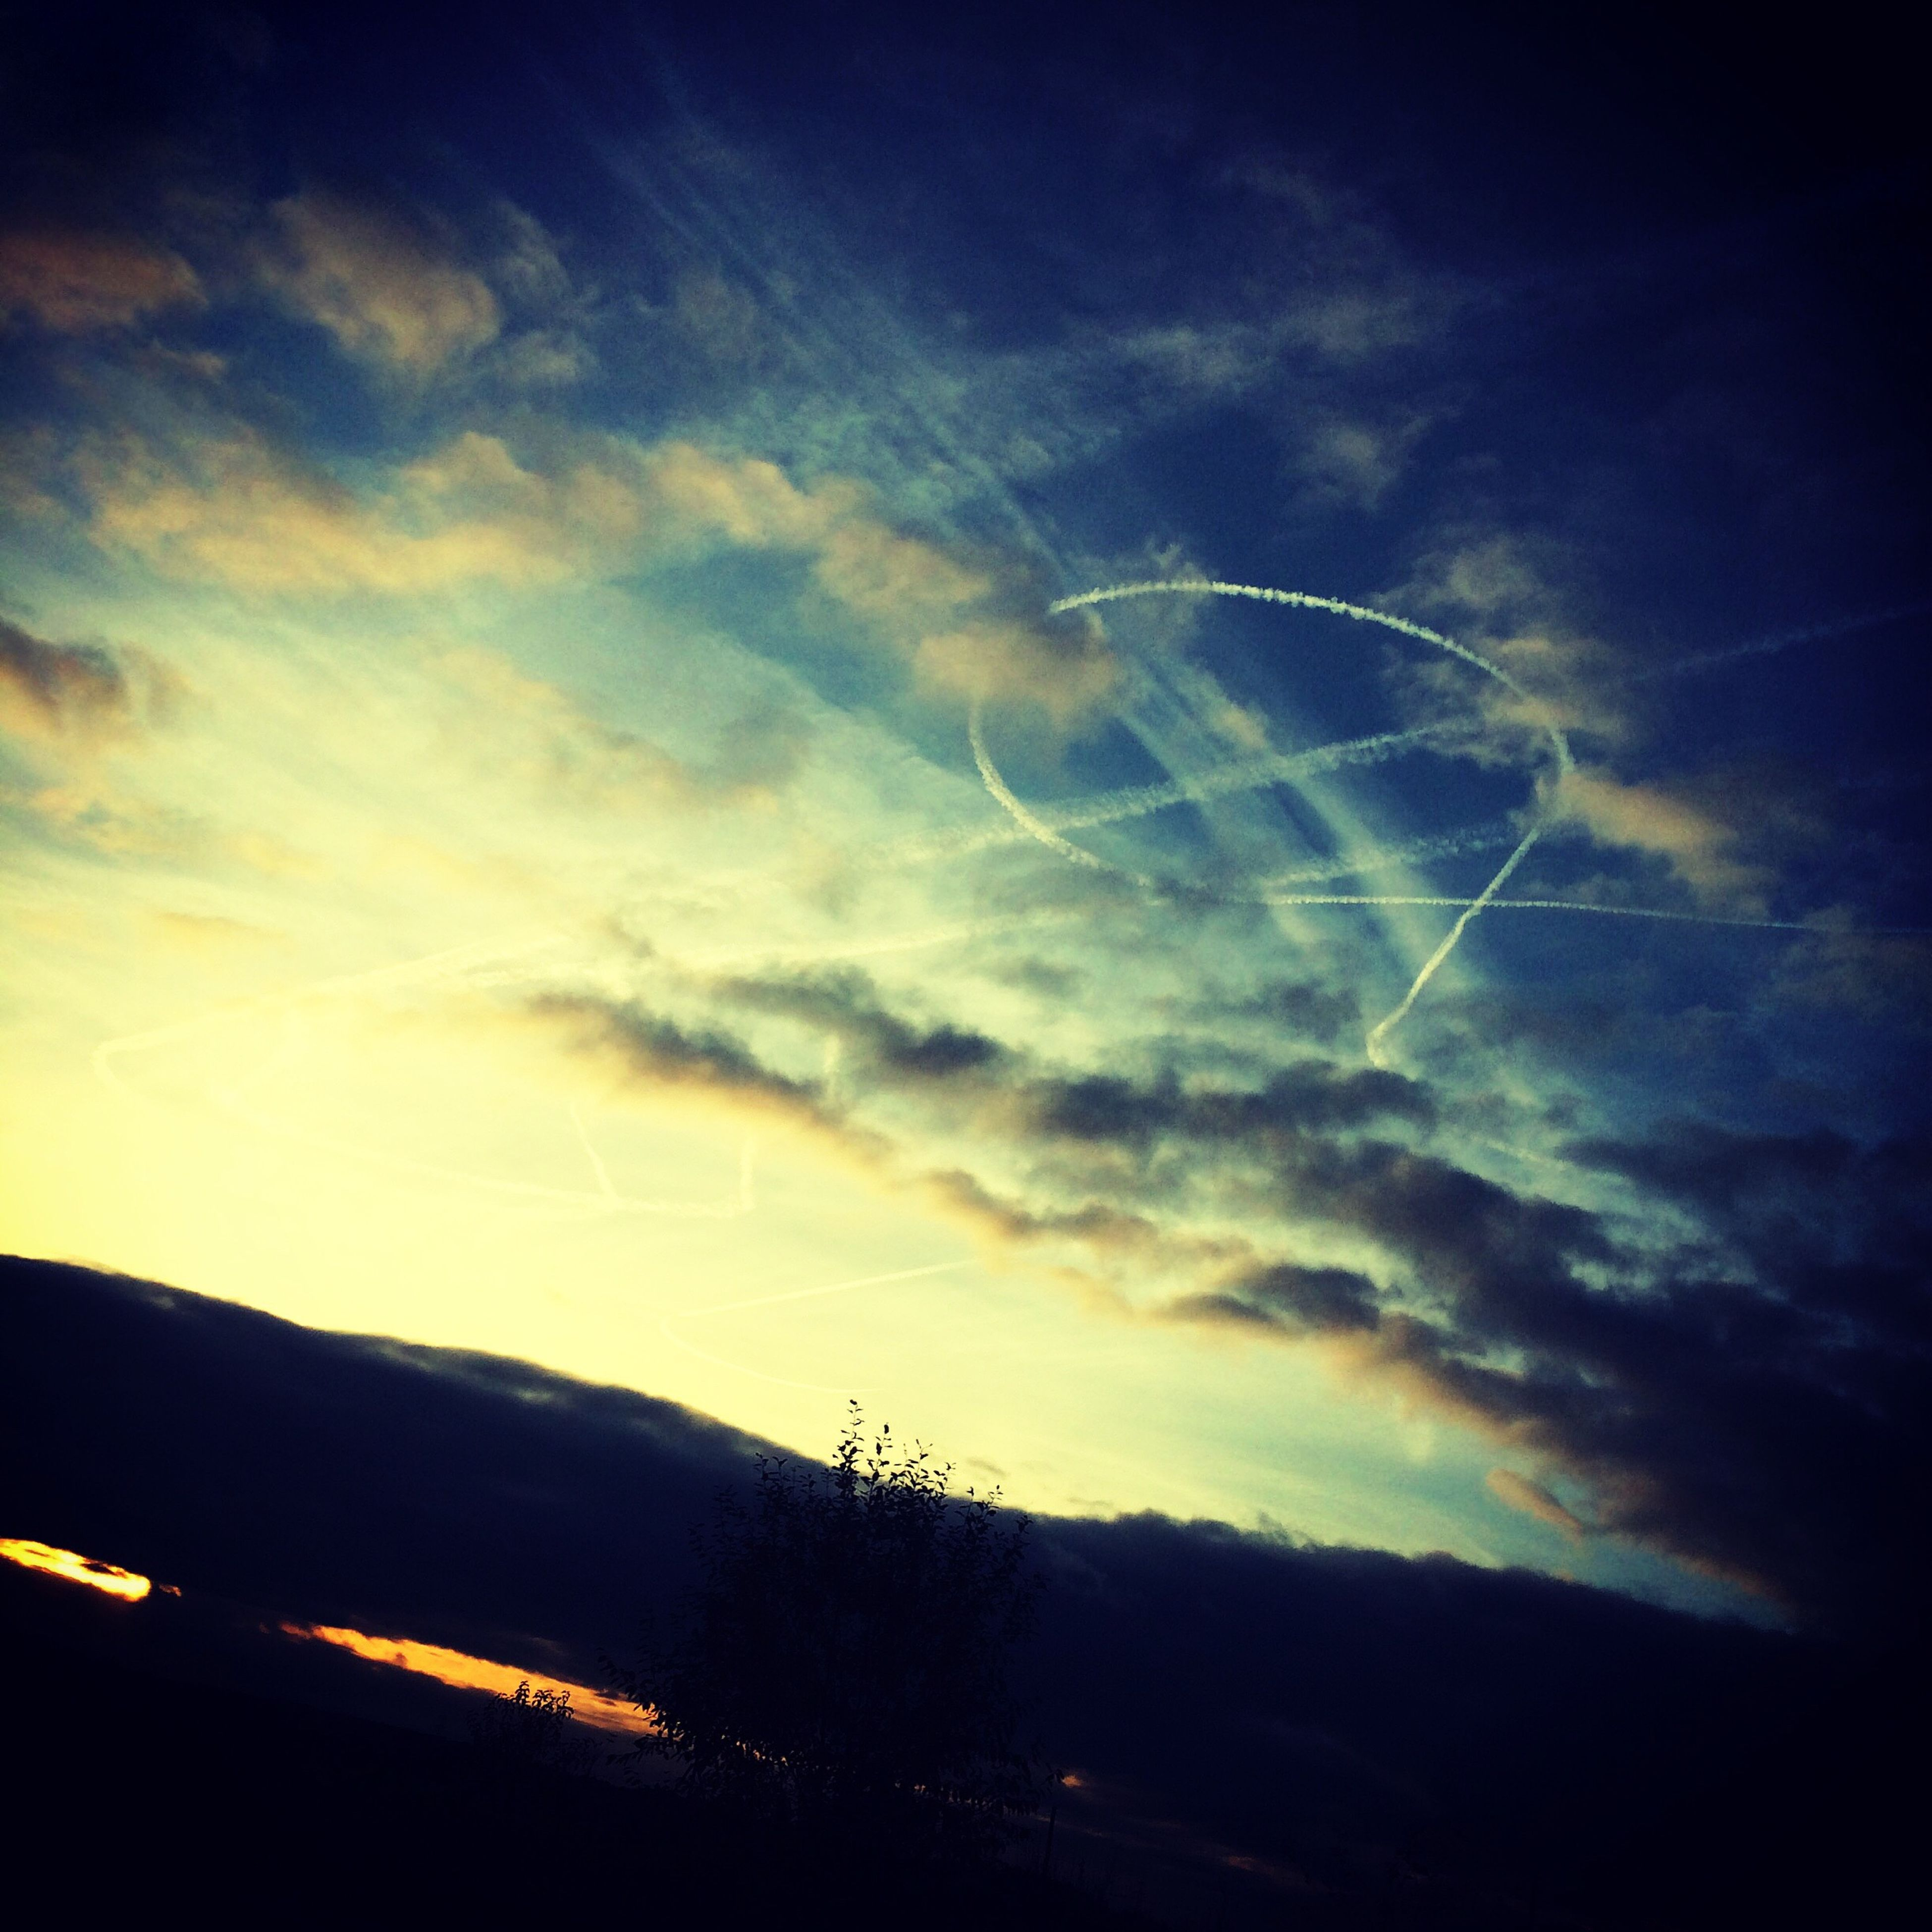 sky, low angle view, silhouette, vapor trail, sunset, nature, no people, scenics, outdoors, beauty in nature, day, contrail